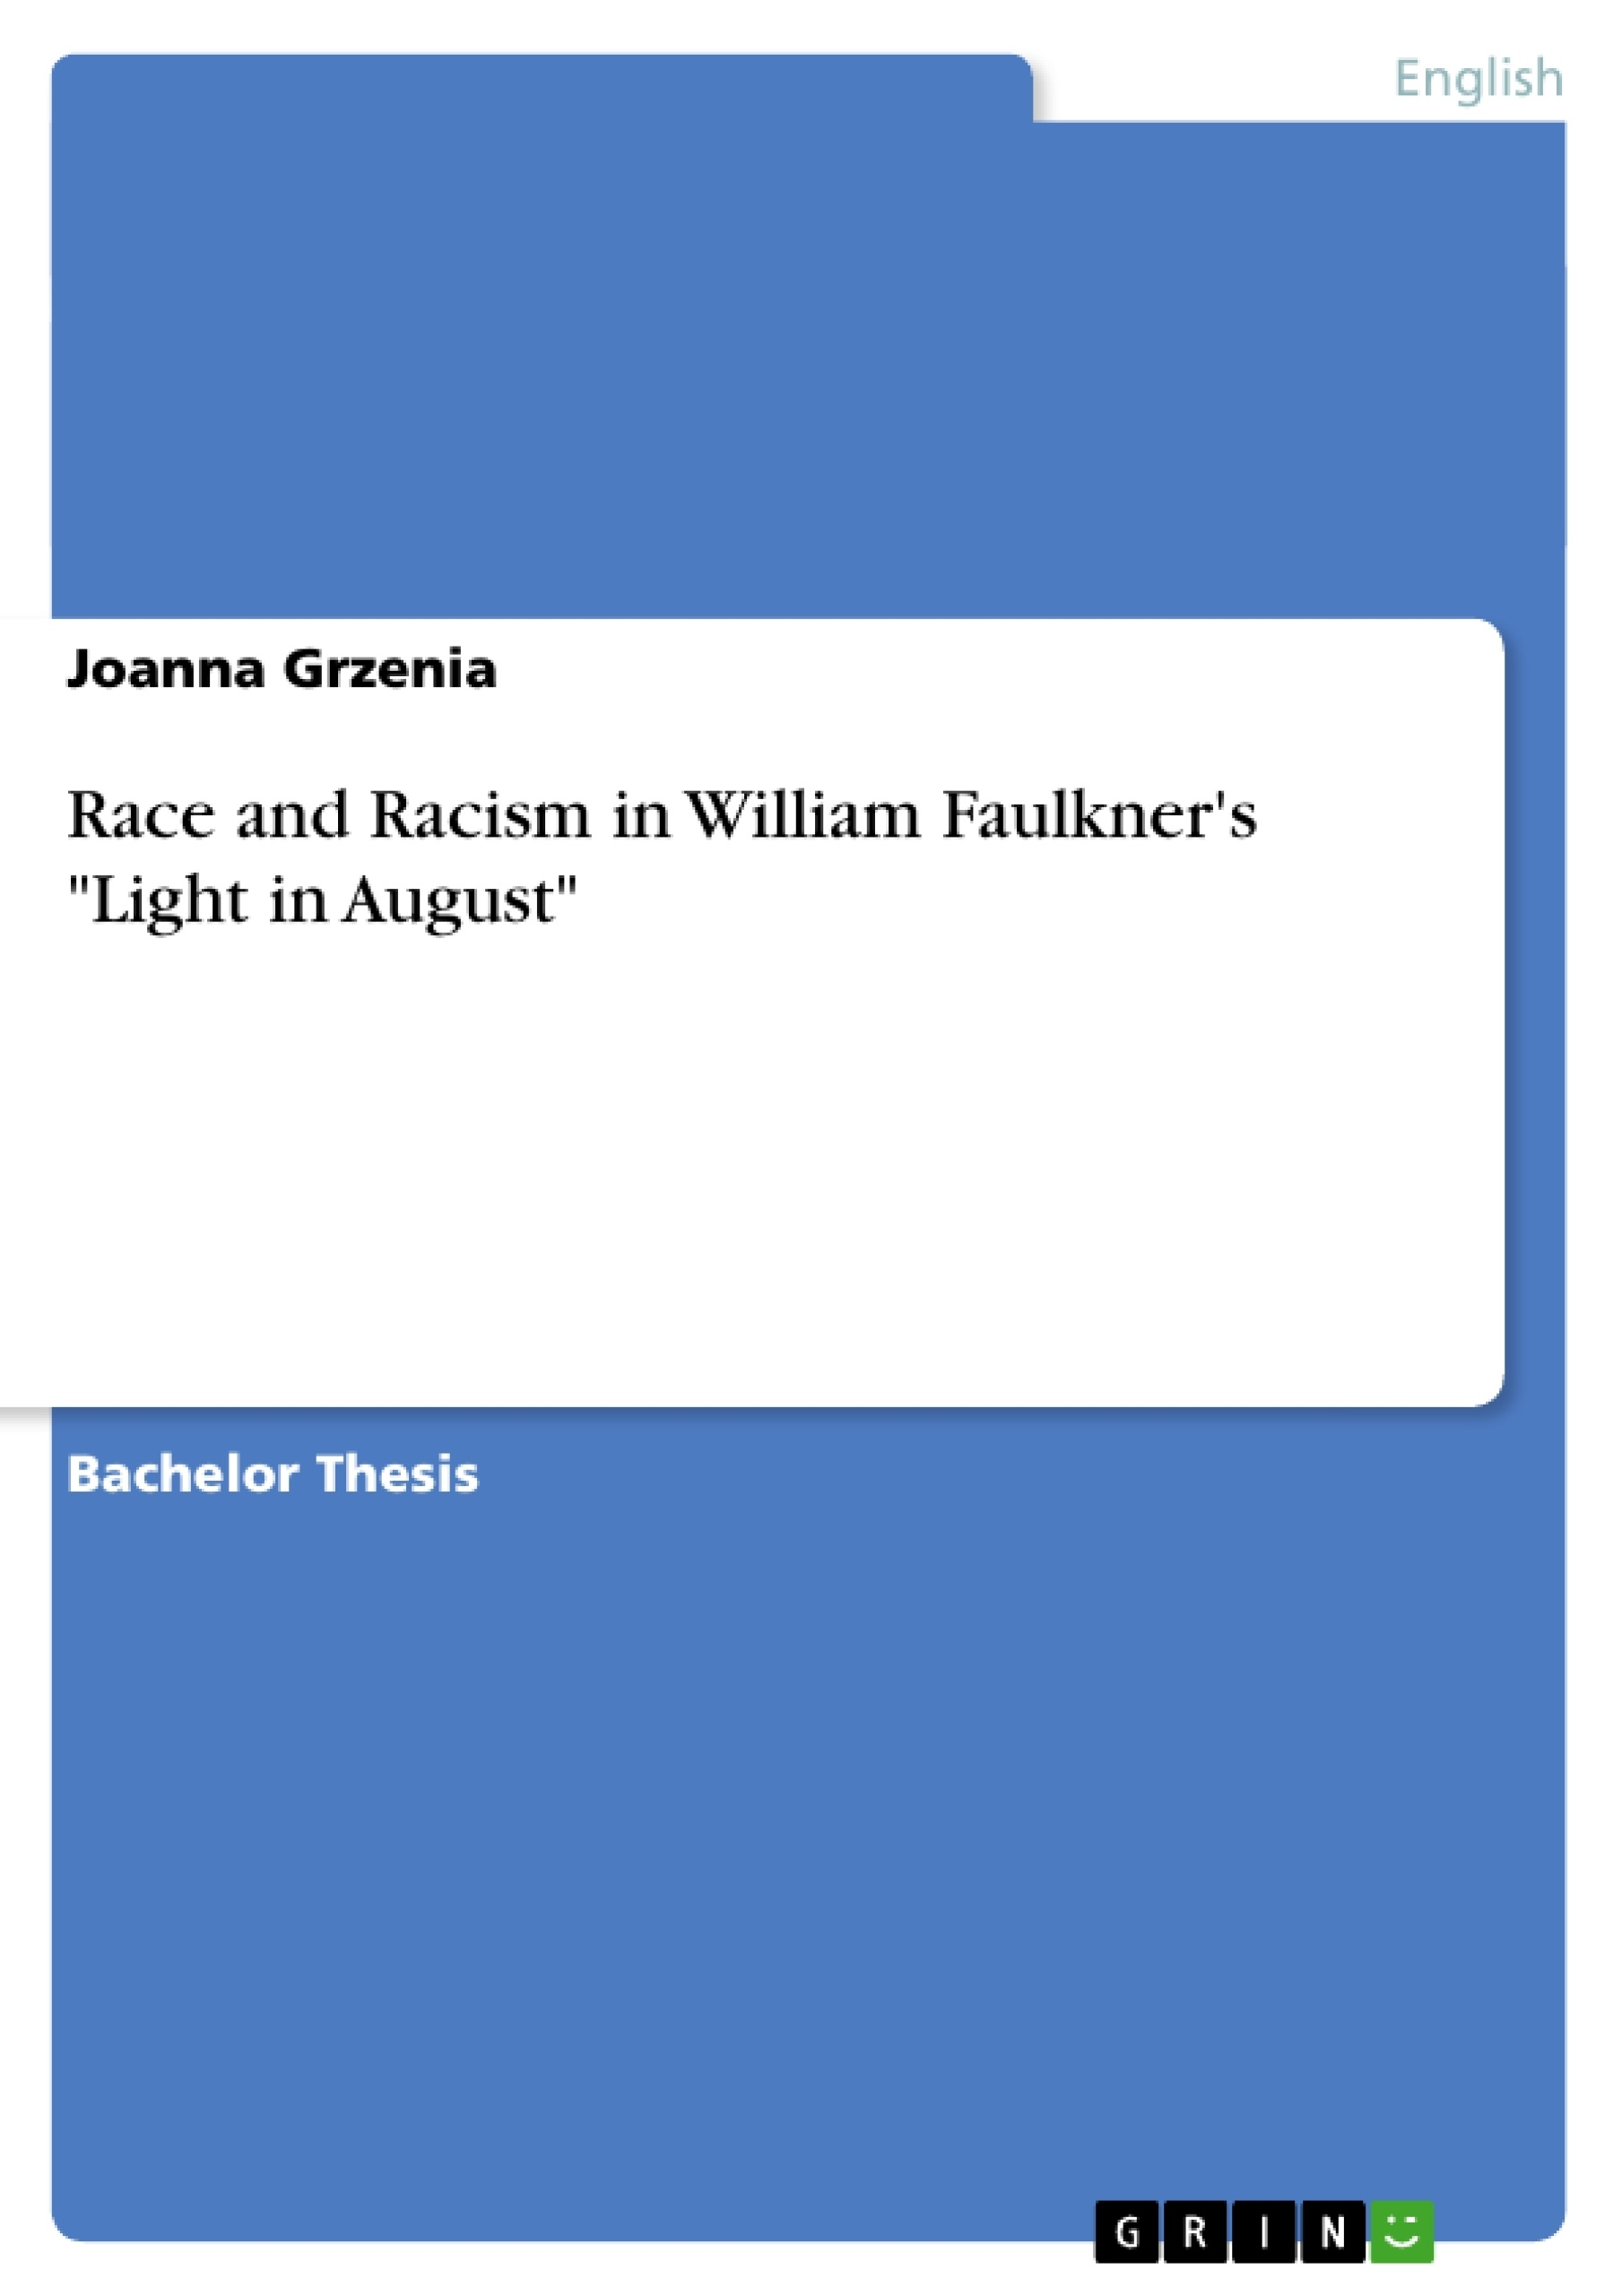 race and racism in william faulkner s light in publish race and racism in william faulkner s light in publish your master s thesis bachelor s thesis essay or term paper